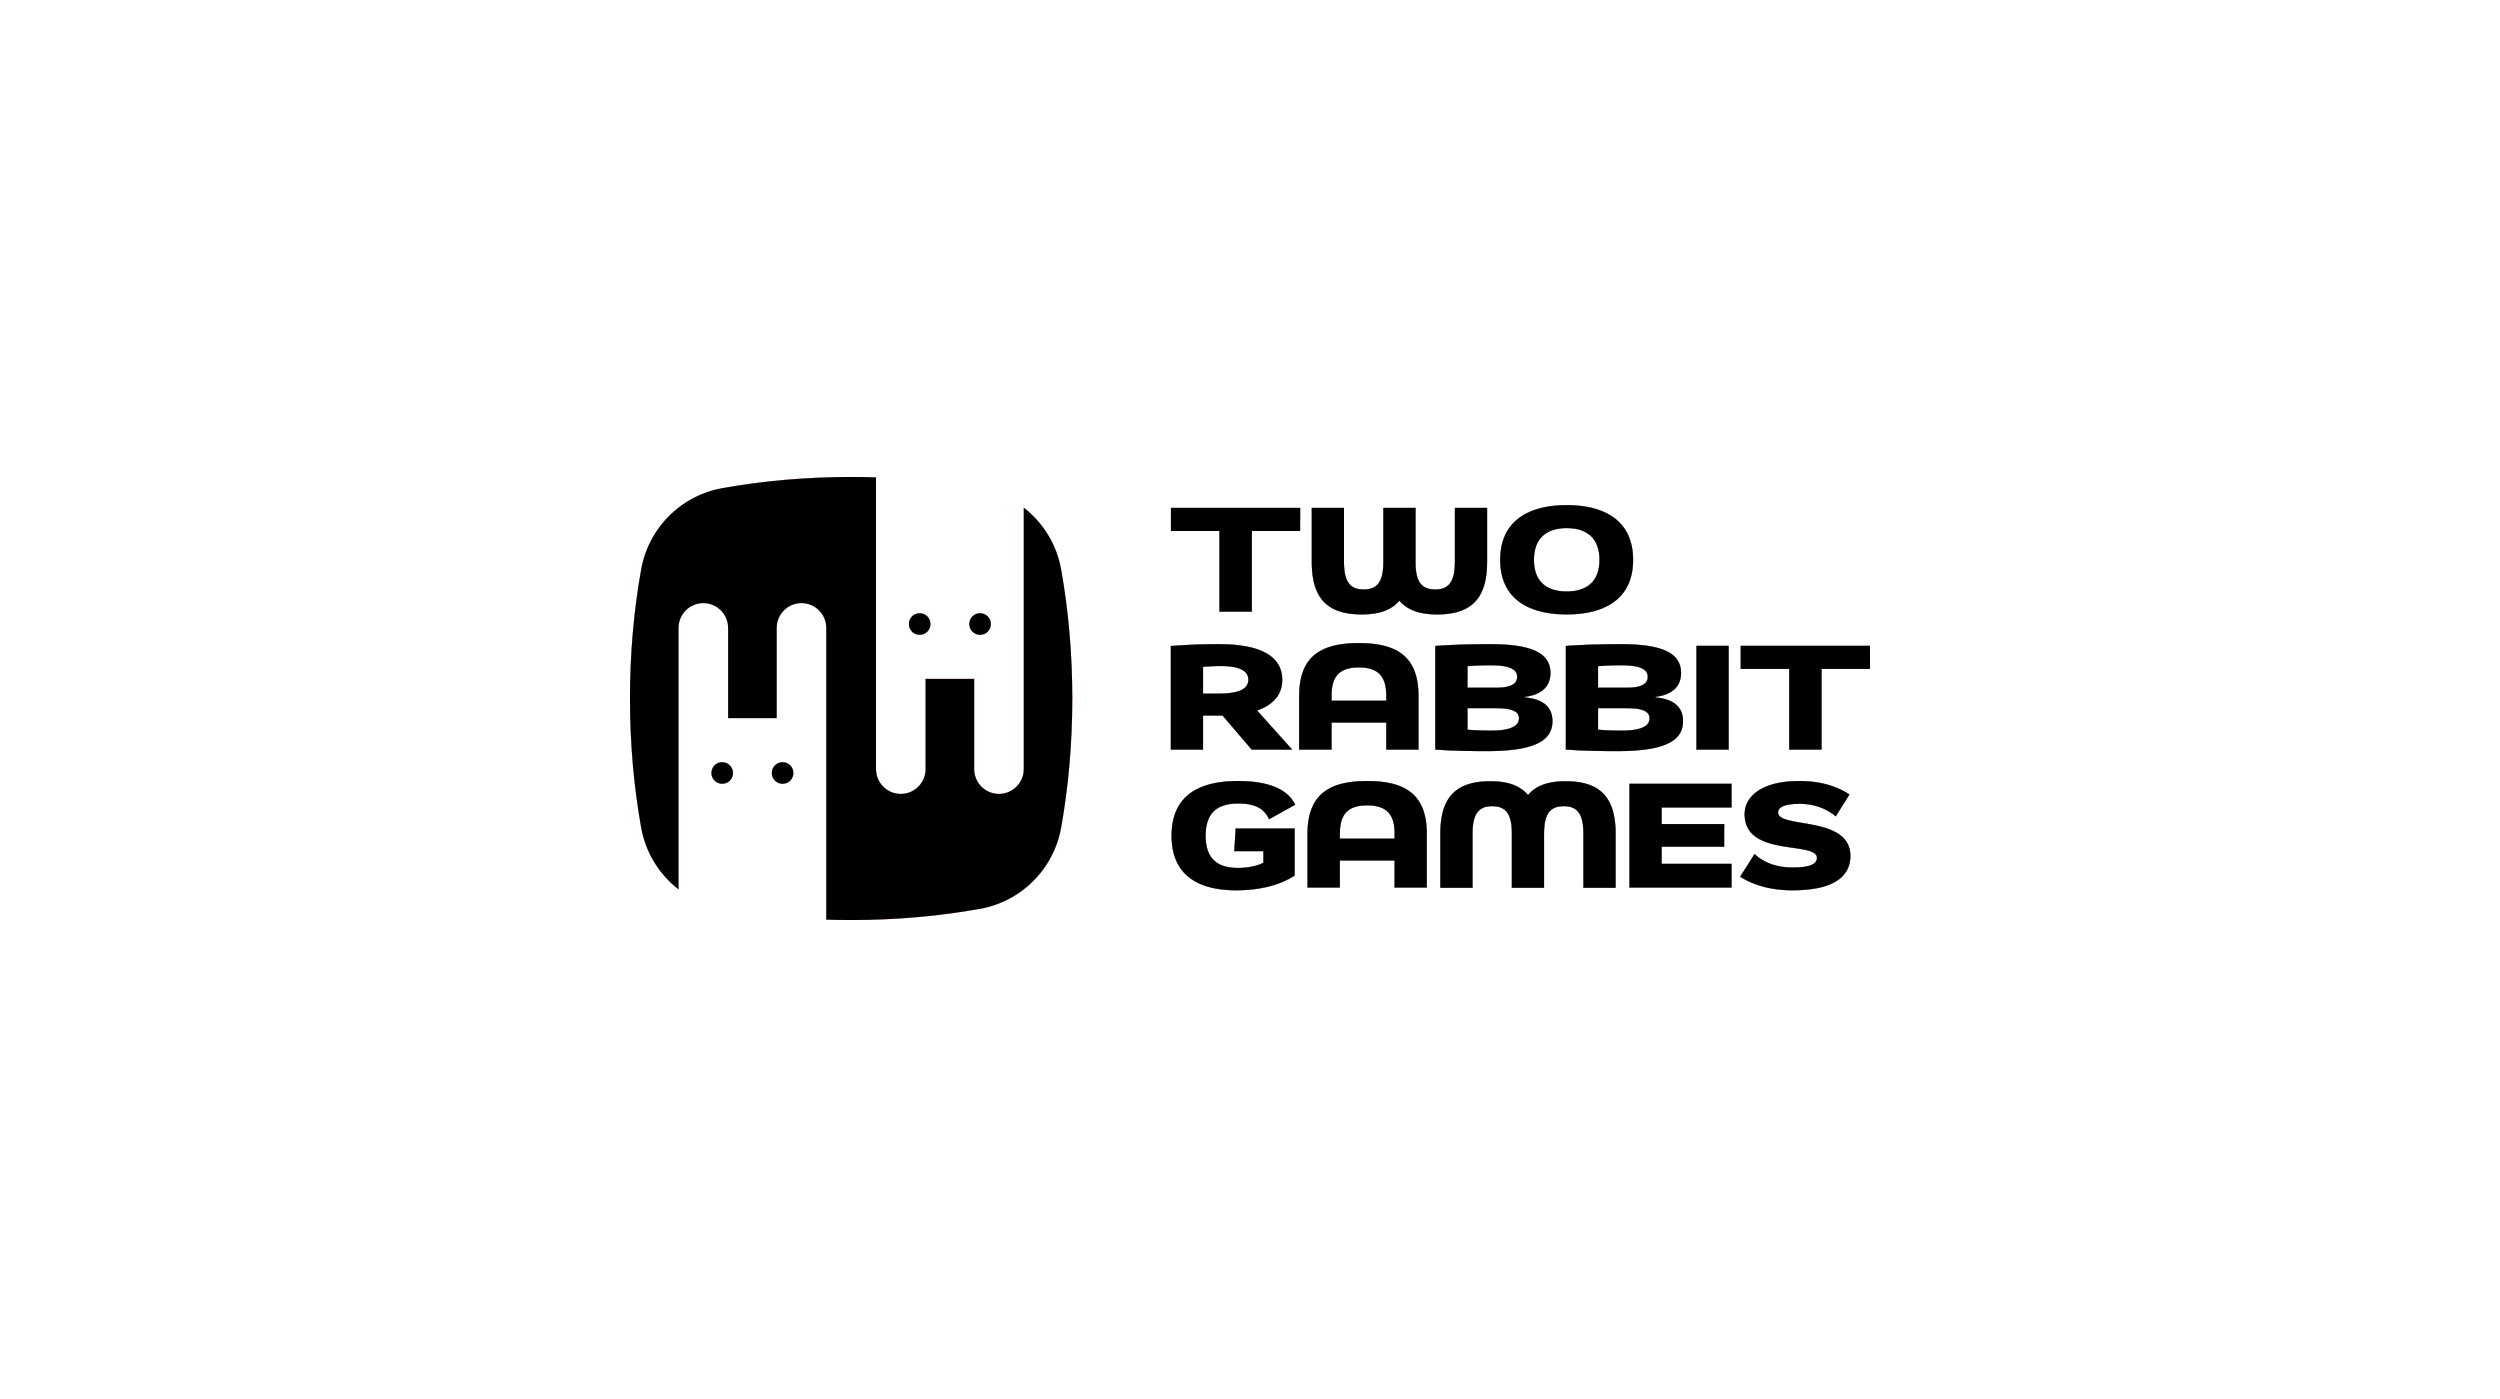 Two-Rabbit-Games_Visuals_BW